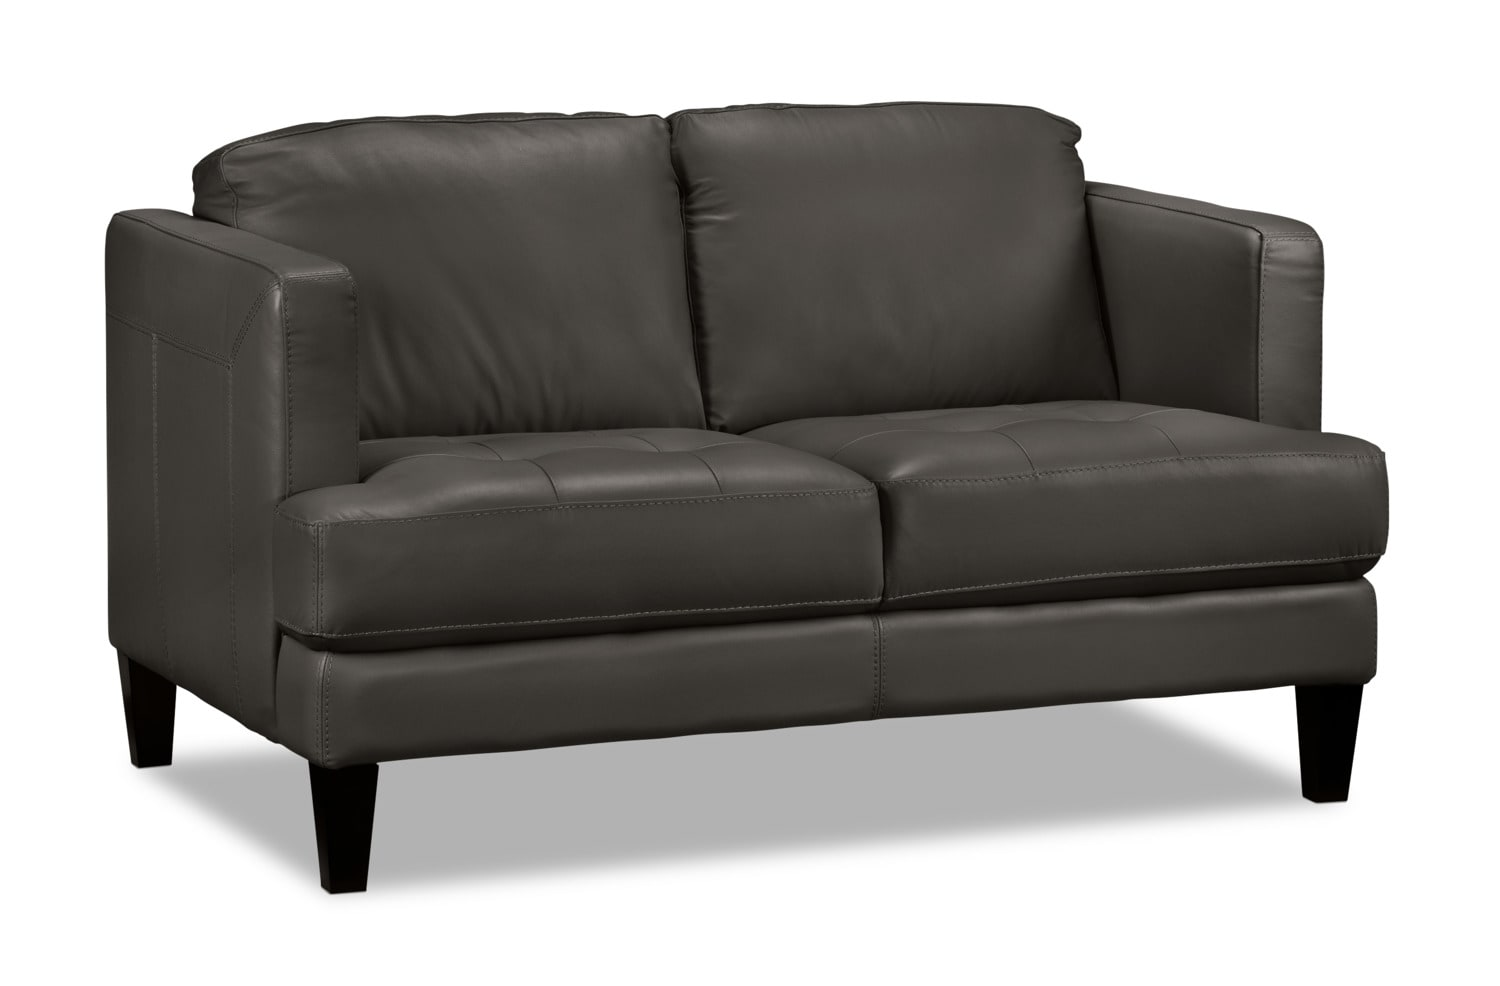 Walker Loveseat - Charcoal